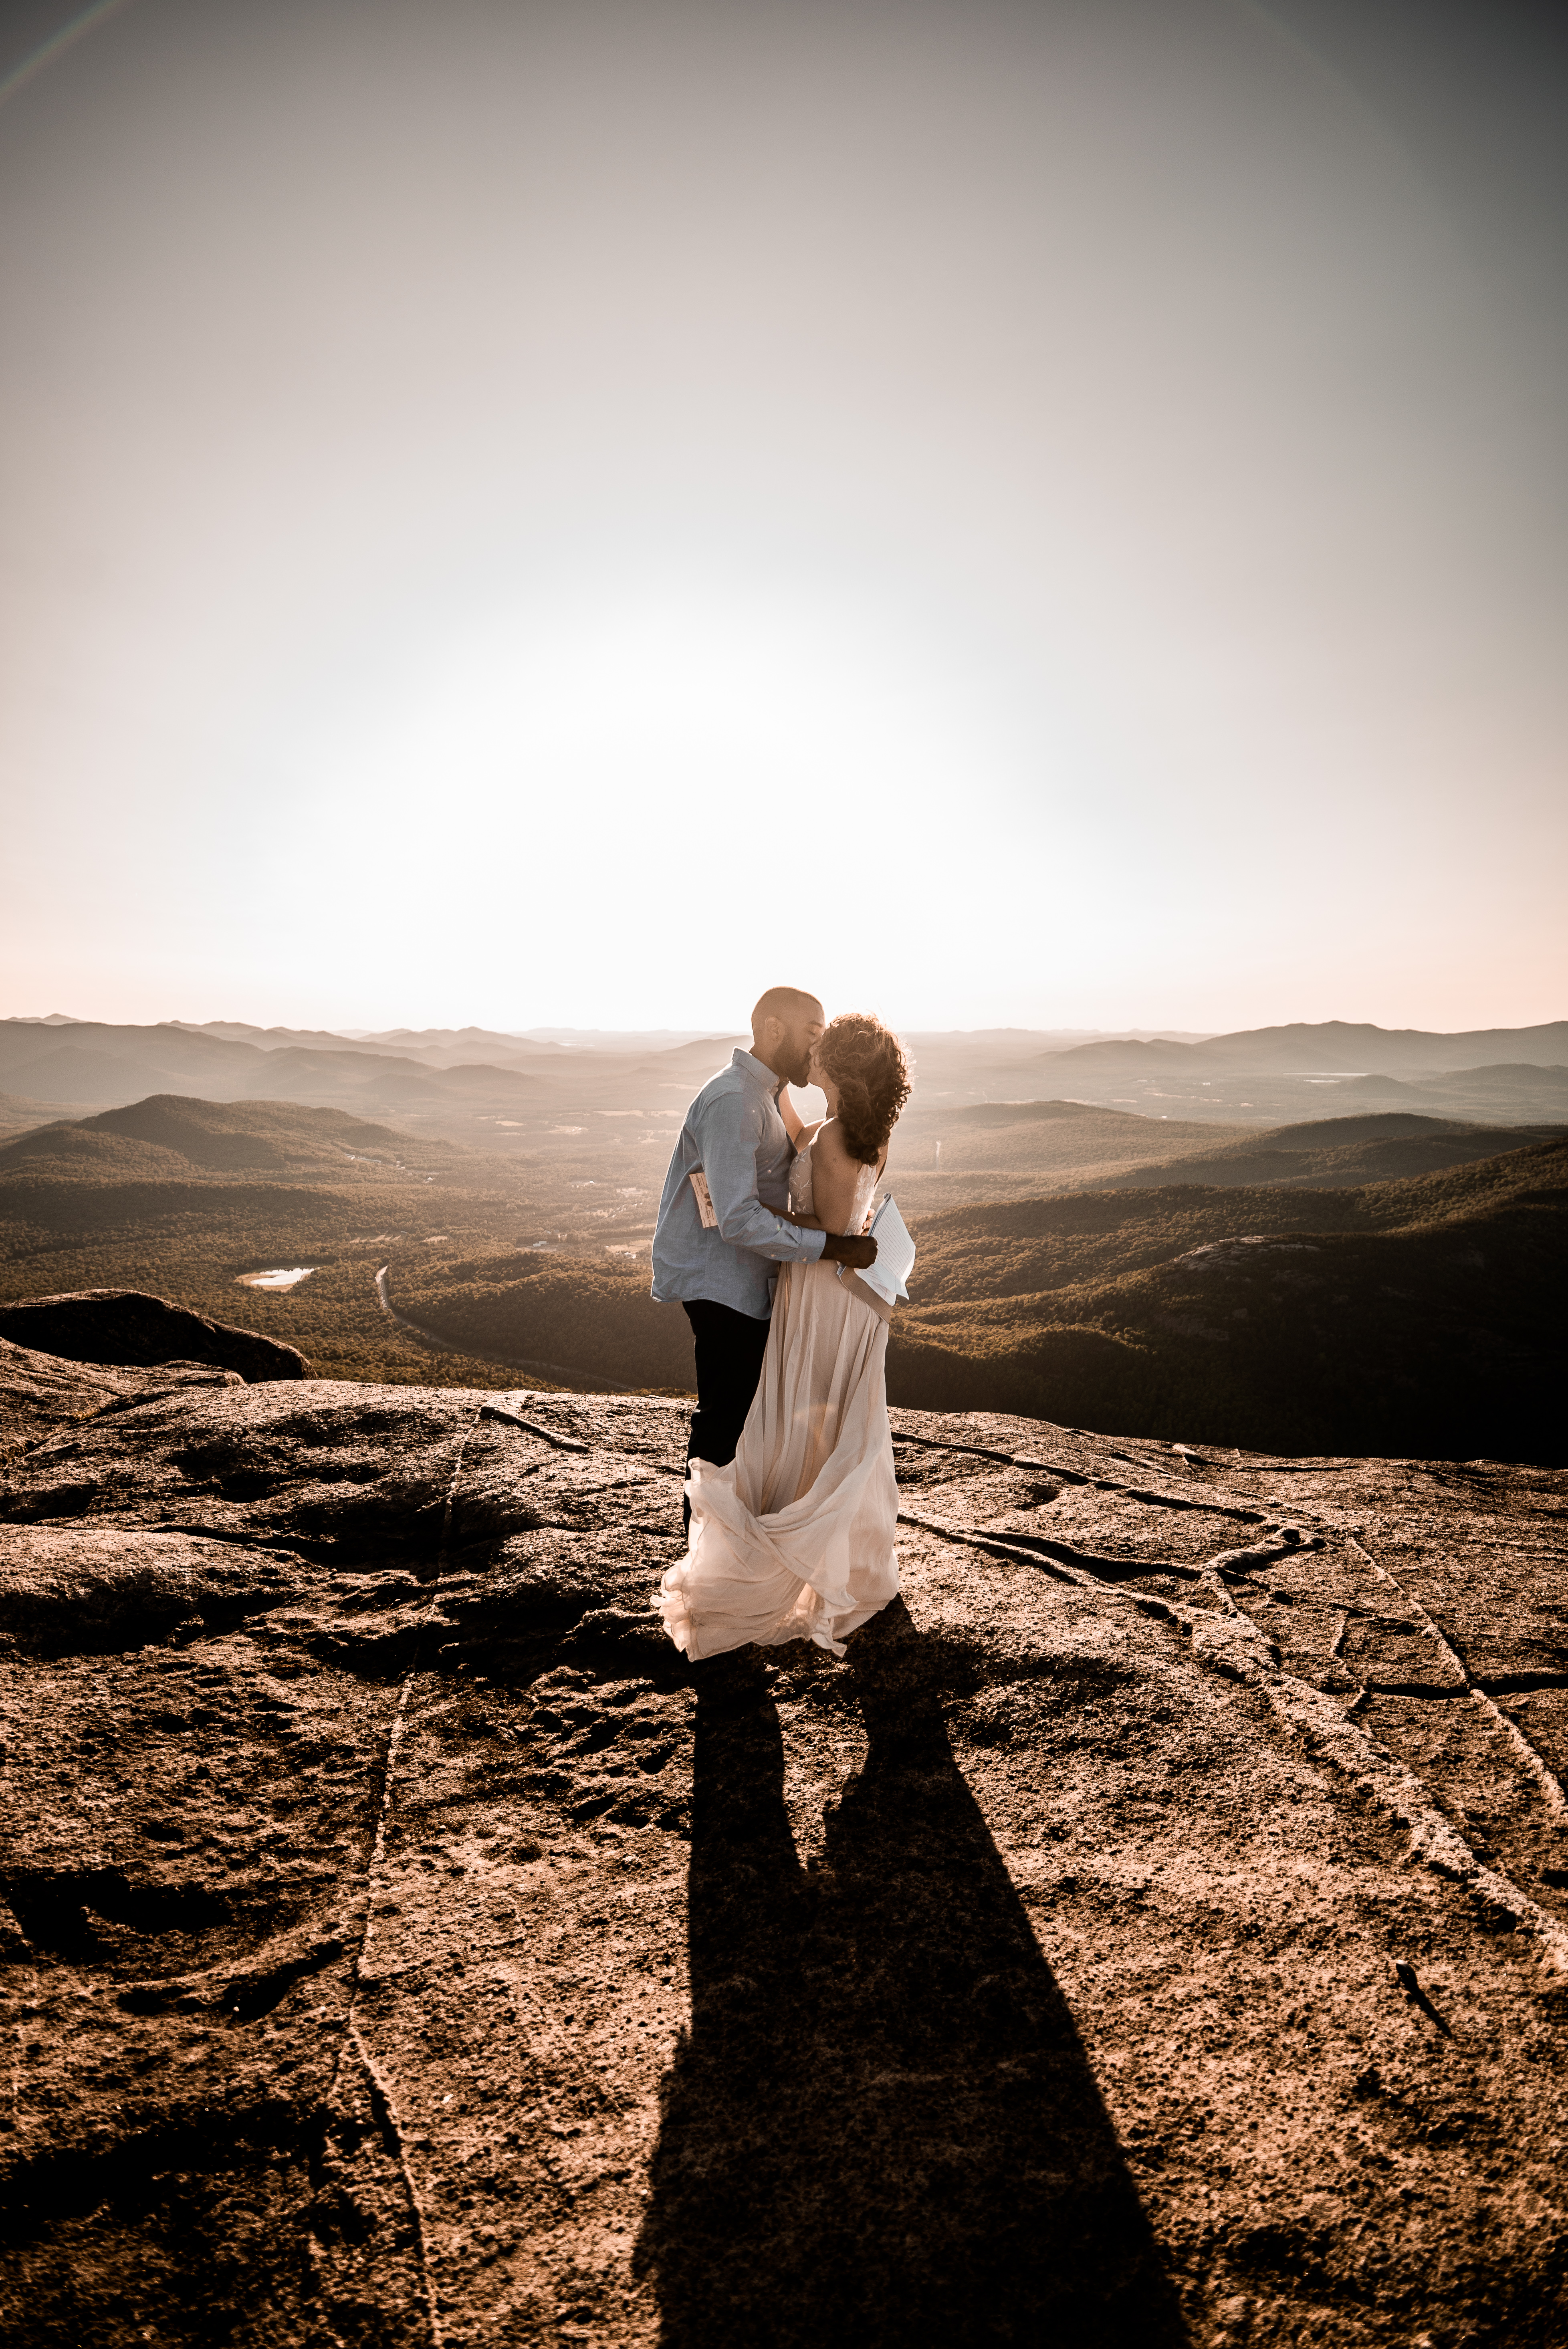 Elopement on Cascade Mountain in the ADKs of upstate NY